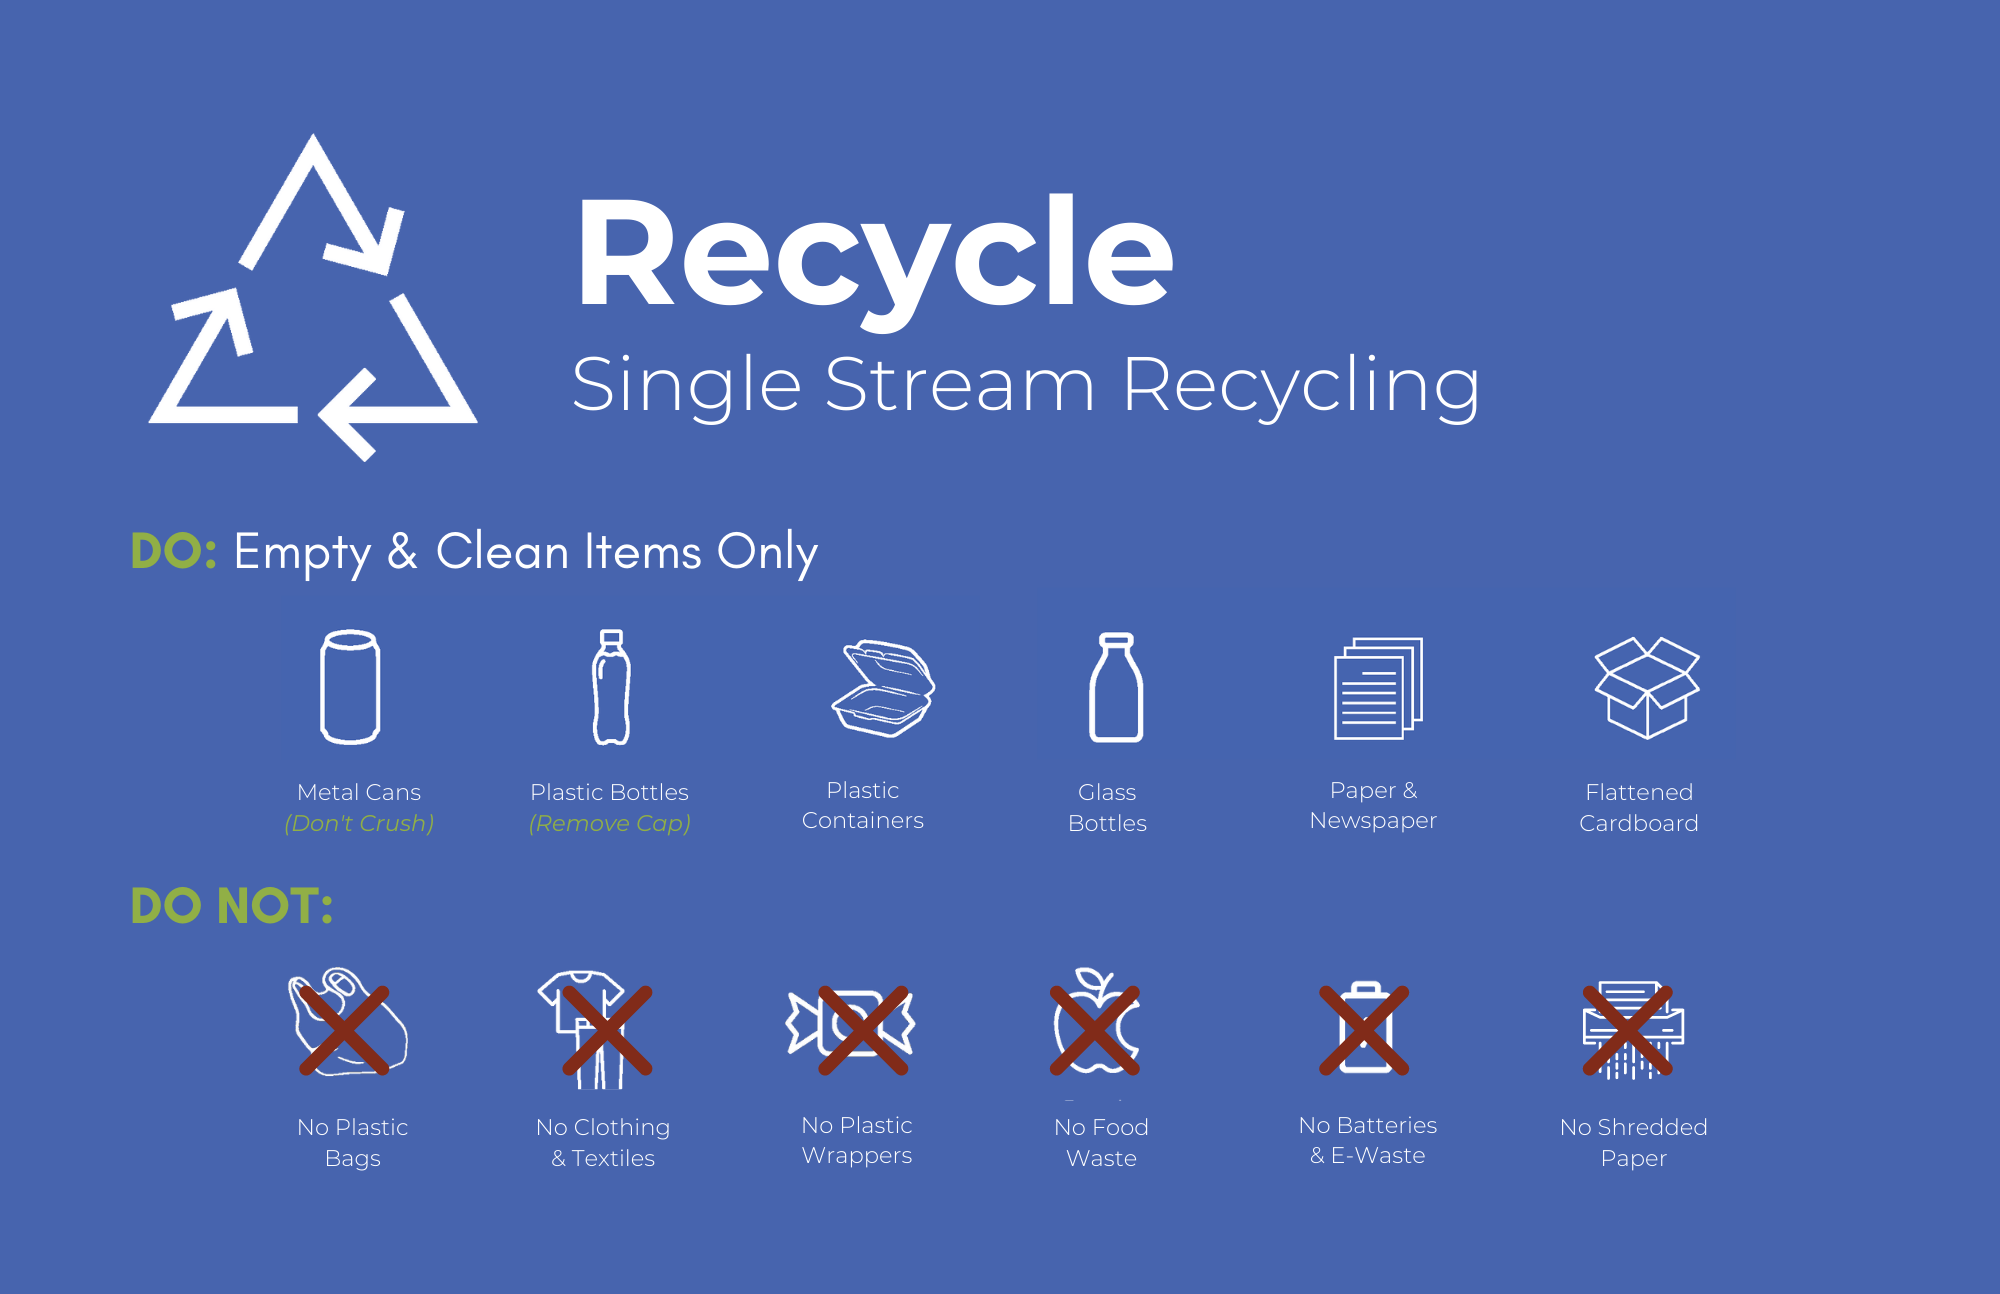 SUS---Recycle.png